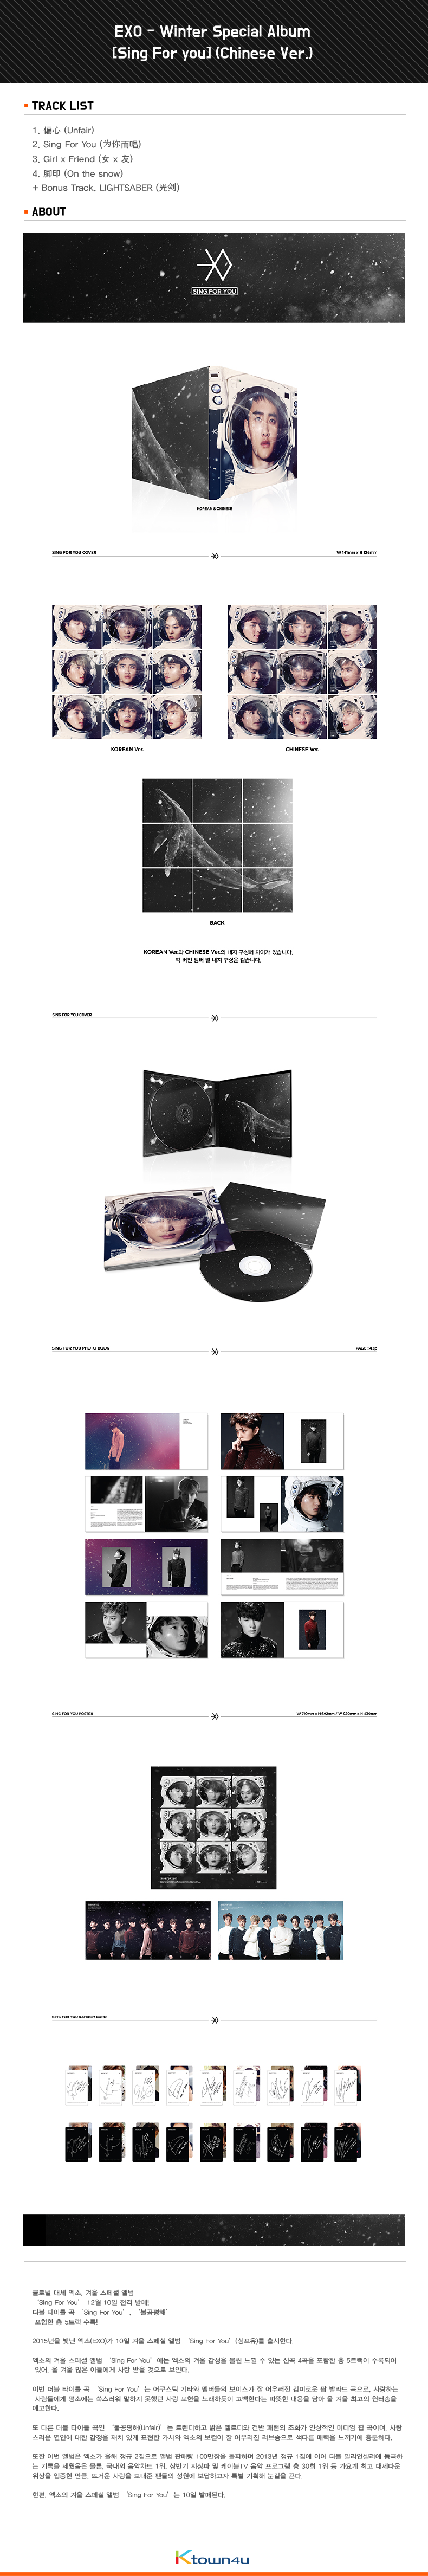 EXO - Winter Special Album [Sing For You] (Chinese Ver.) (Random)